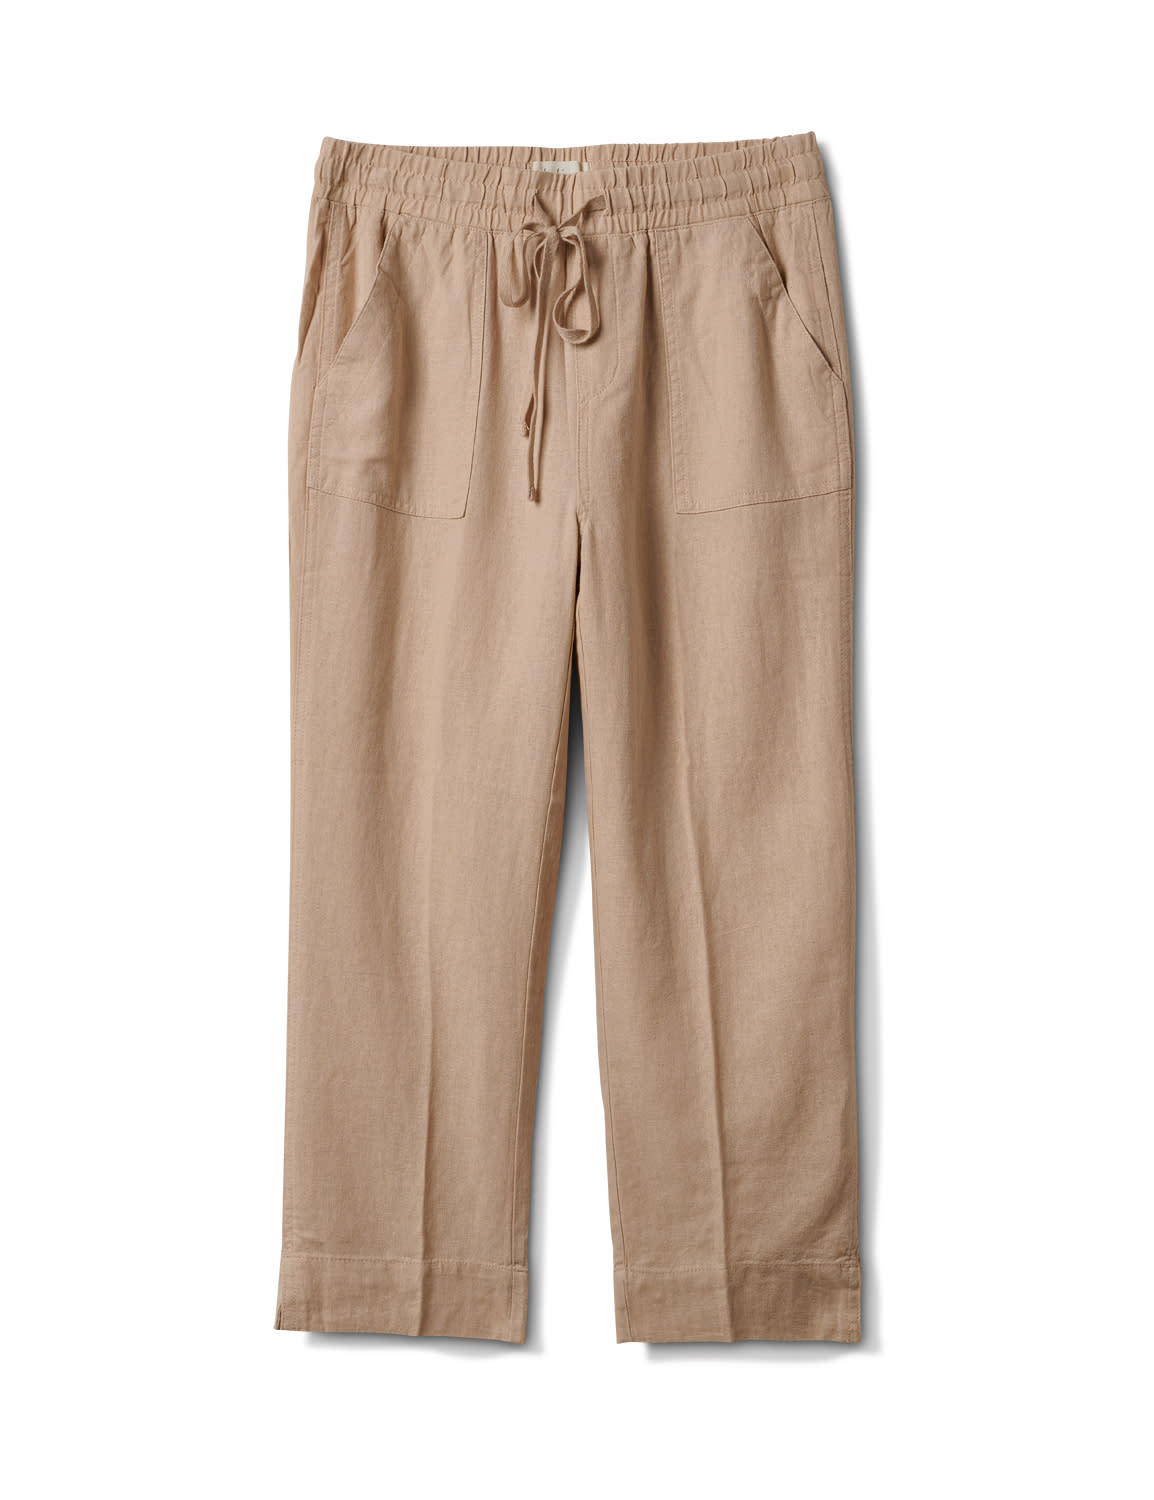 Drawstring  Waist Pull On Crop Pant With Pockets - Natural - Front